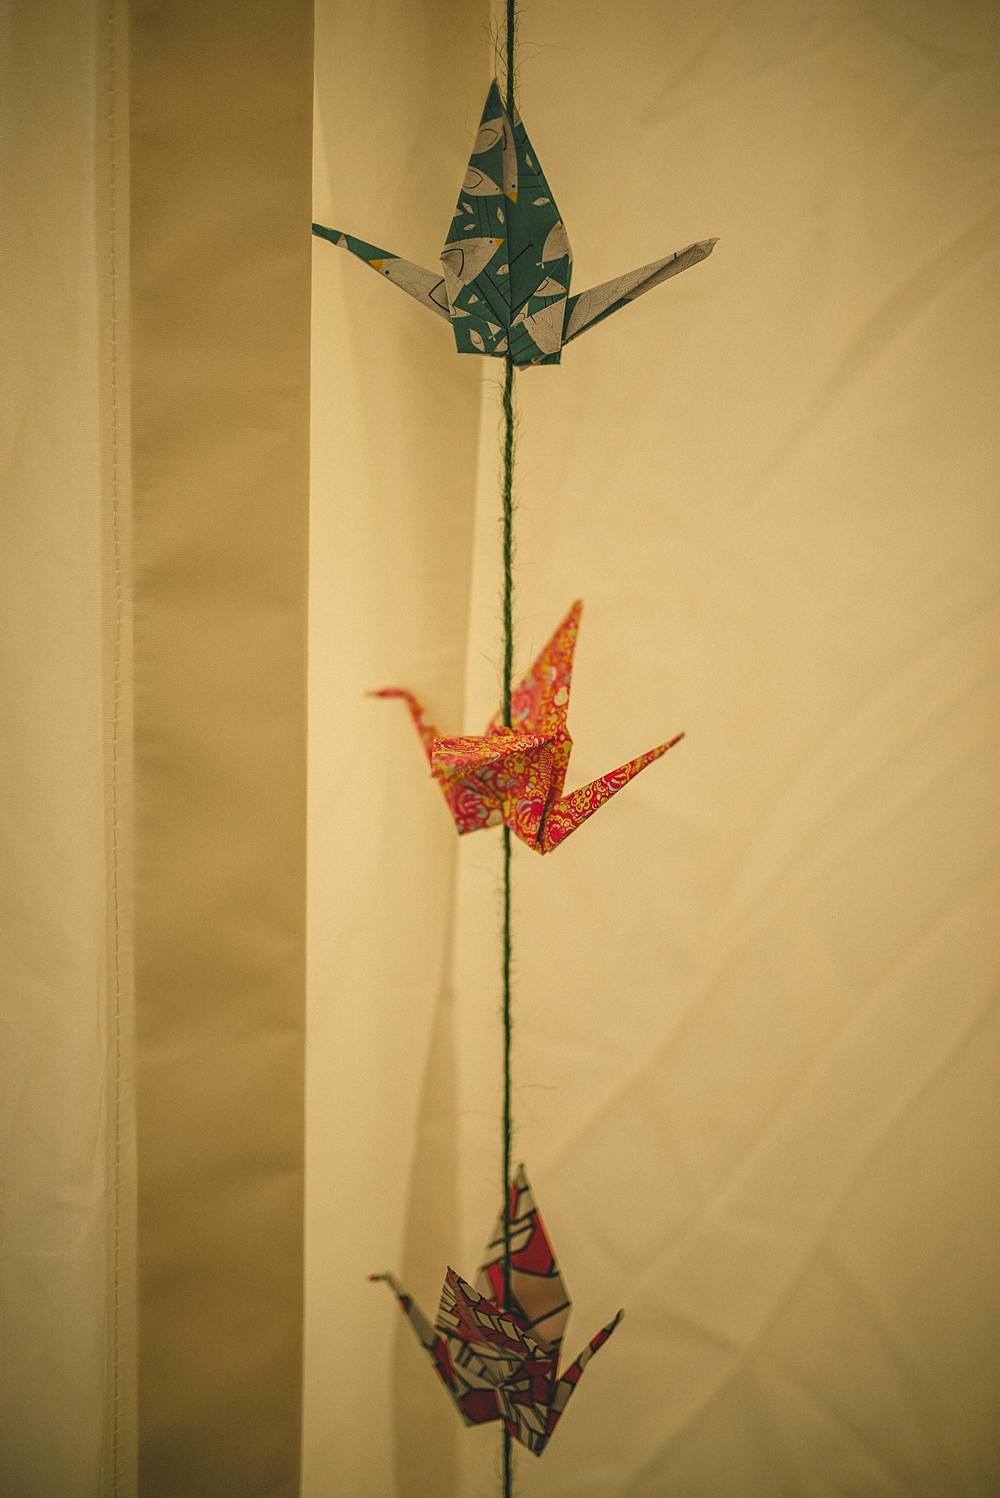 Origami cranes in the wedding marquee